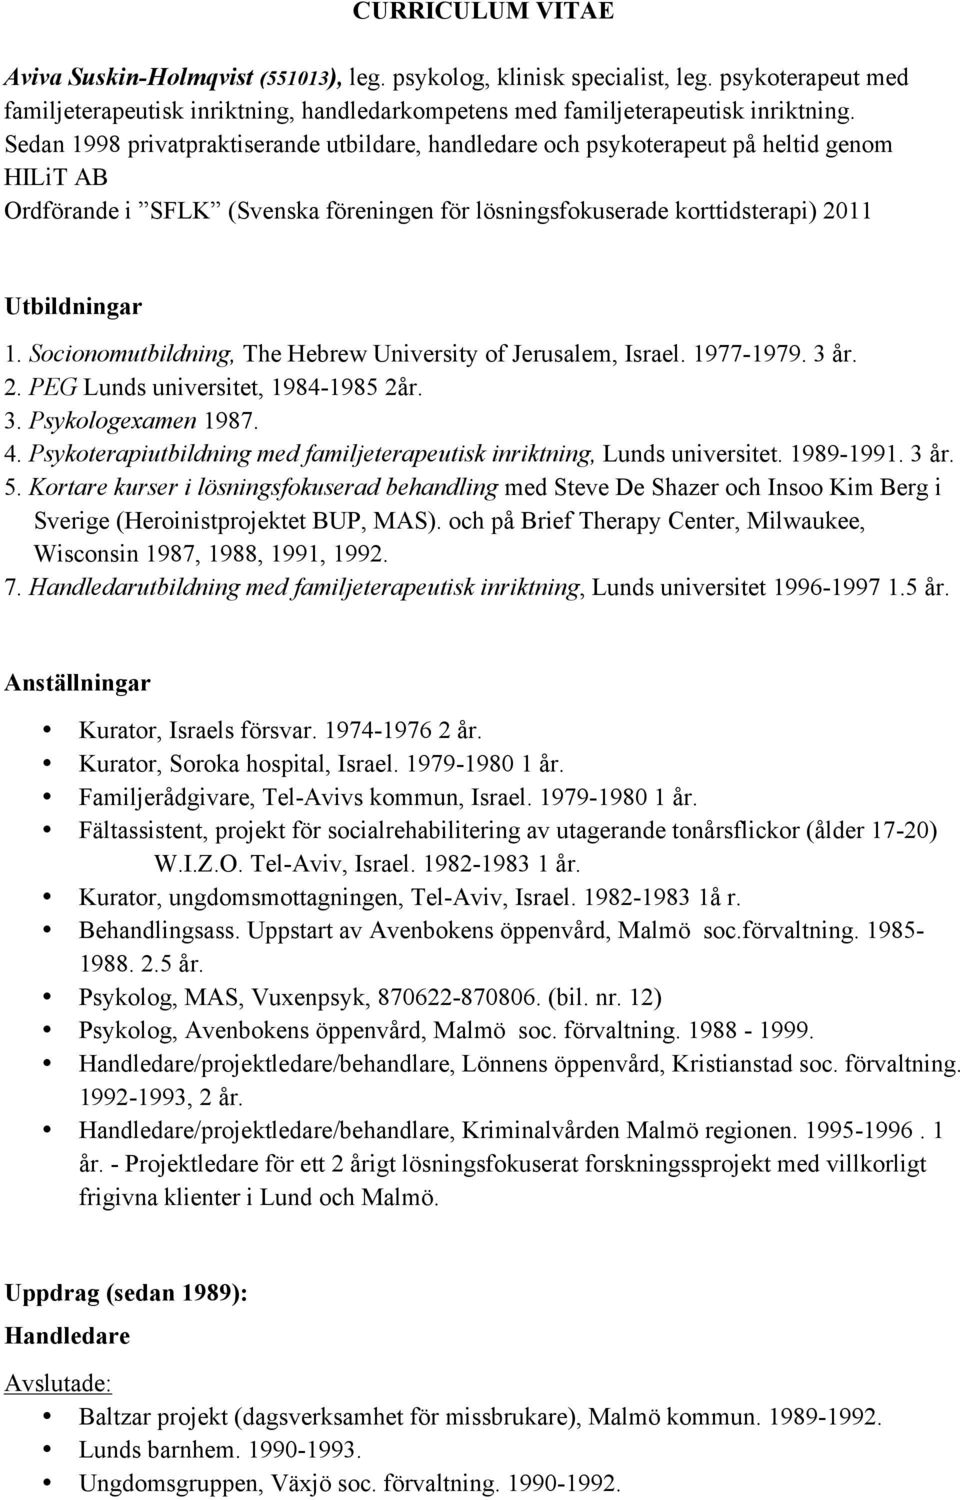 Socionomutbildning, The Hebrew University of Jerusalem, Israel. 1977-1979. 3 år. 2. PEG Lunds universitet, 1984-1985 2år. 3. Psykologexamen 1987. 4.